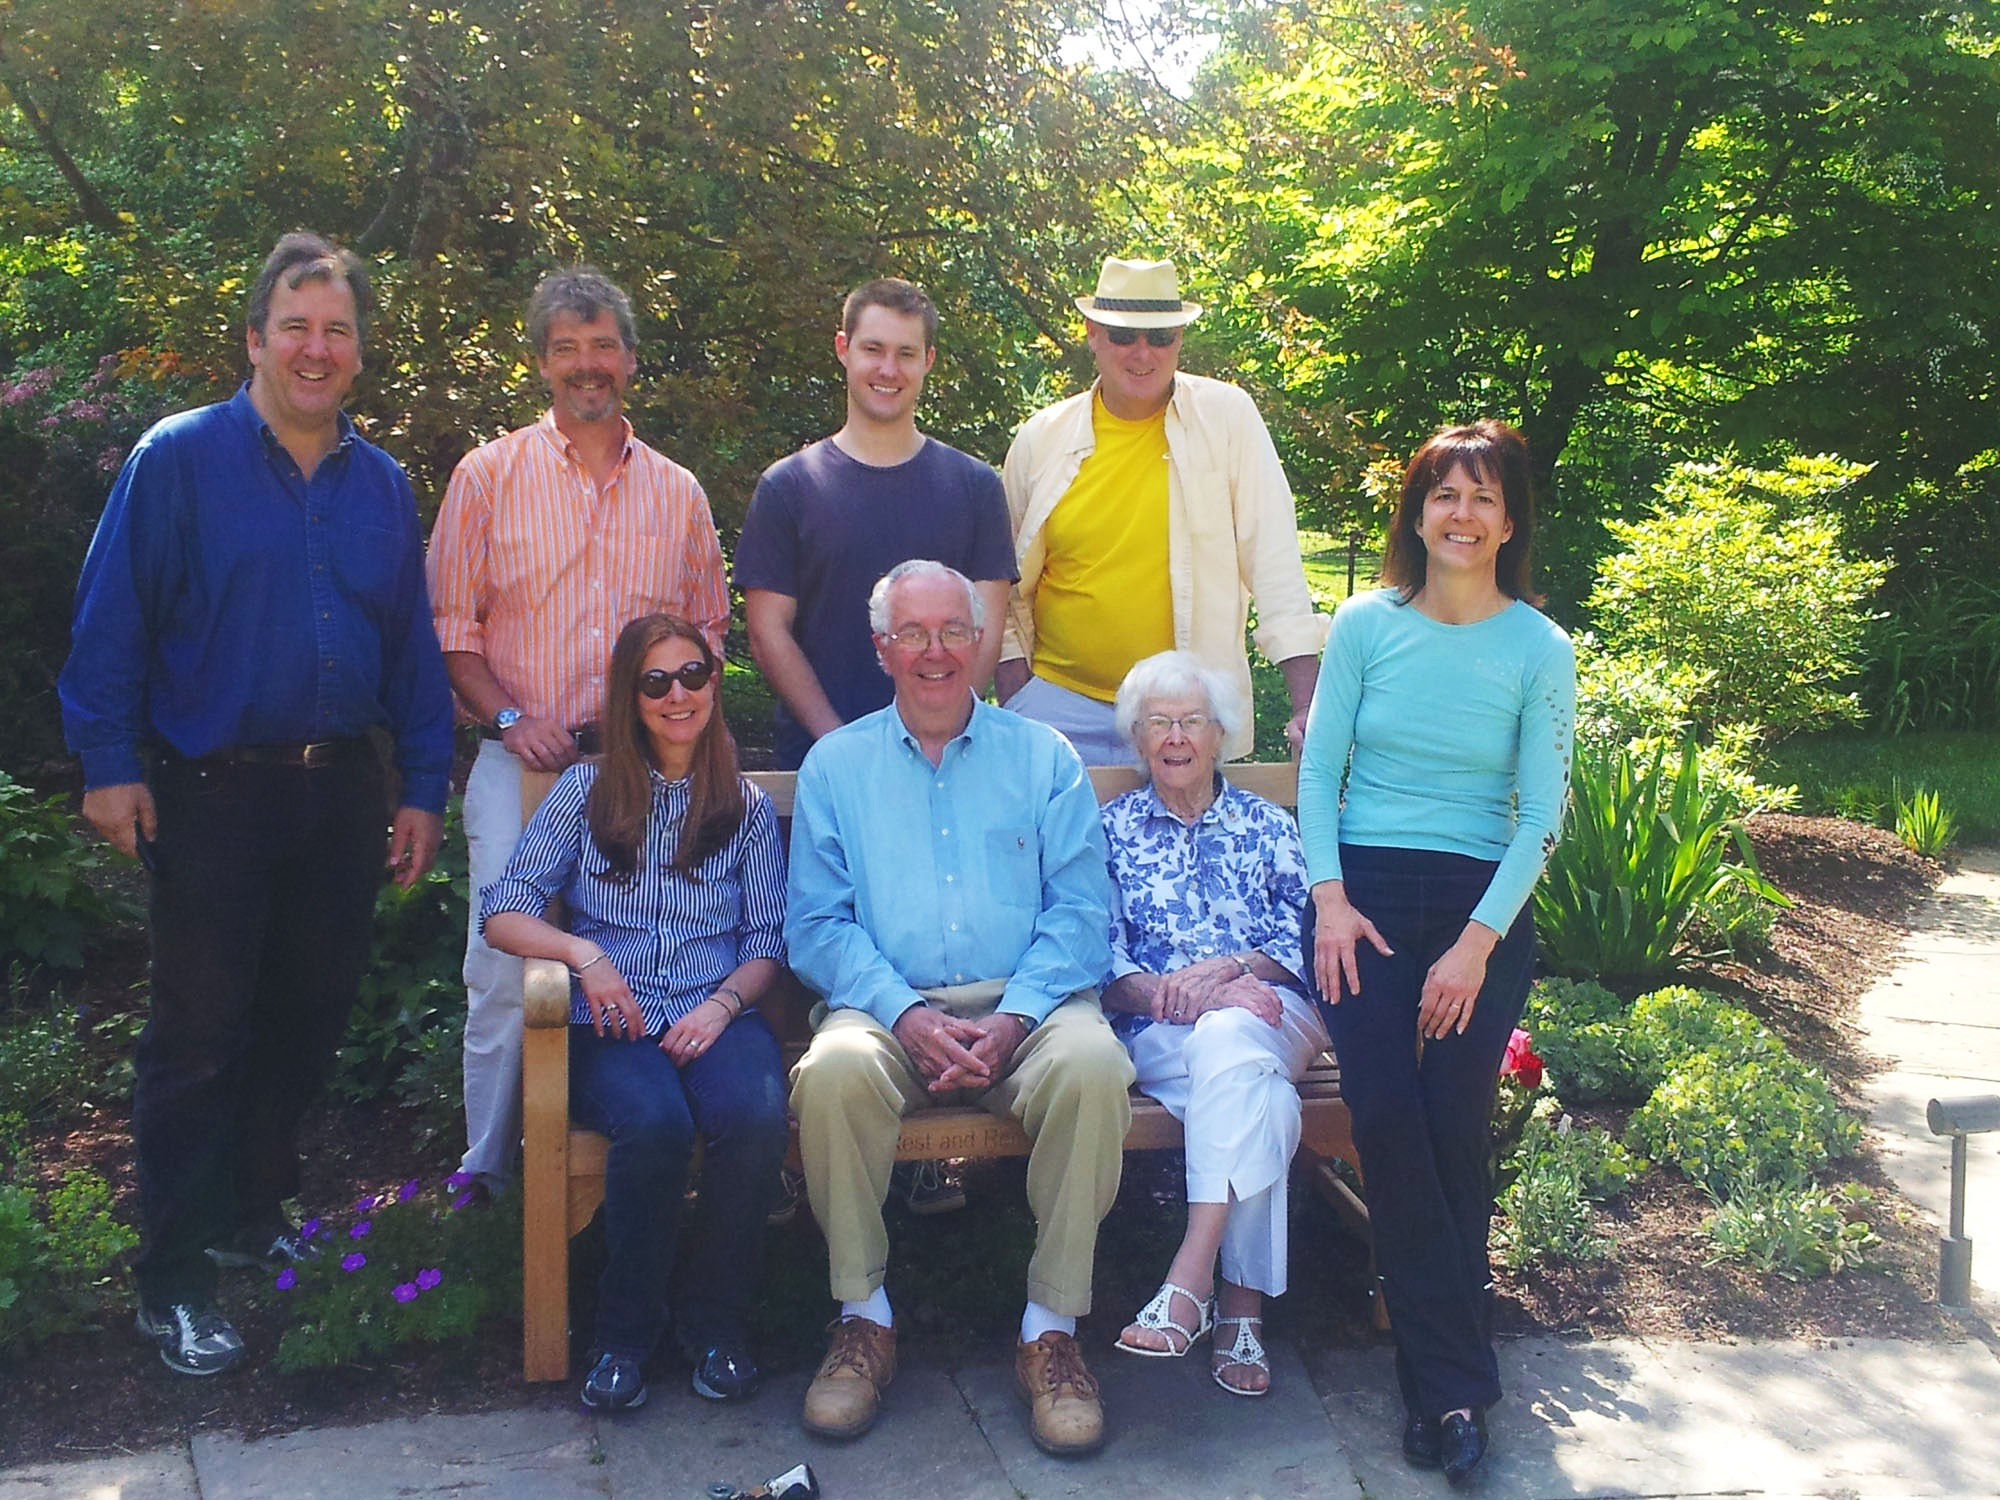 Perri Evanson's family gathered in 2012 in the memorial garden at Swarthmore Presbyterian Church at a bench dedicated to the memory of Perri's mother, Mary Wright. From left to right, standing are brothers Mark and Jeff Wright, son David Evanson Jr., ex-husband David Evanson Sr.; sitting are Mark's wife Cheryl Wright, father Ken Wright, grandmother Roma Wright (now deceased), and Perri.